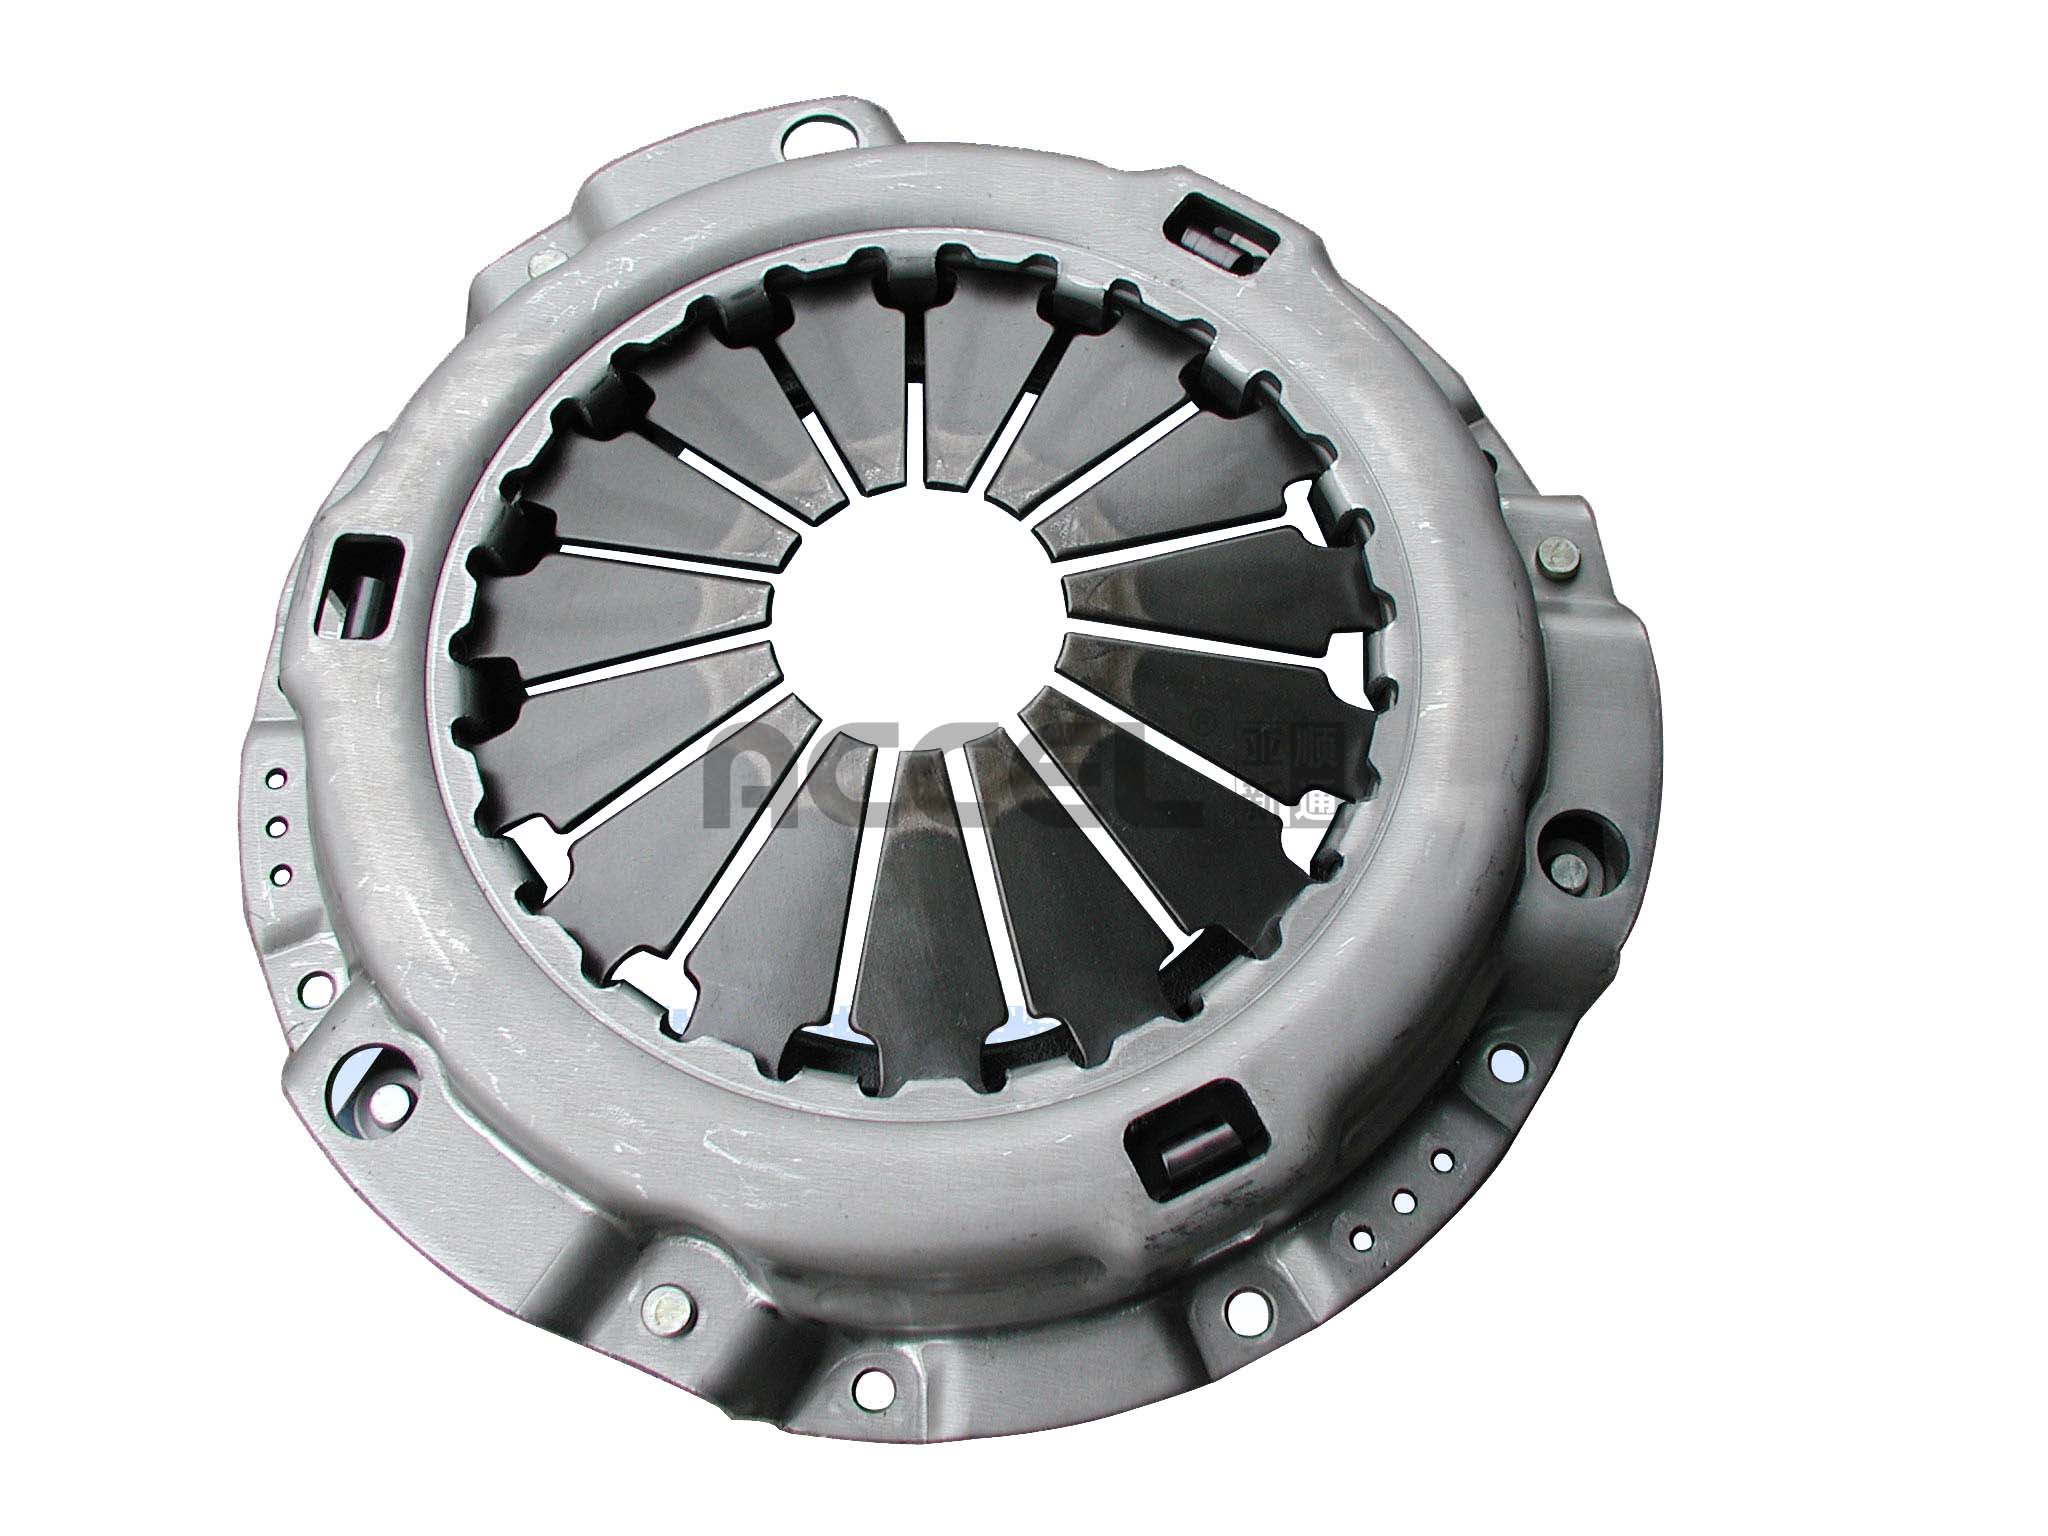 Clutch Cover/OE:31210-36170/275*170*311/CTY-006/TOYOTA/LY208/CT-079/TYC540/31210-36190/CT-079/TYC540